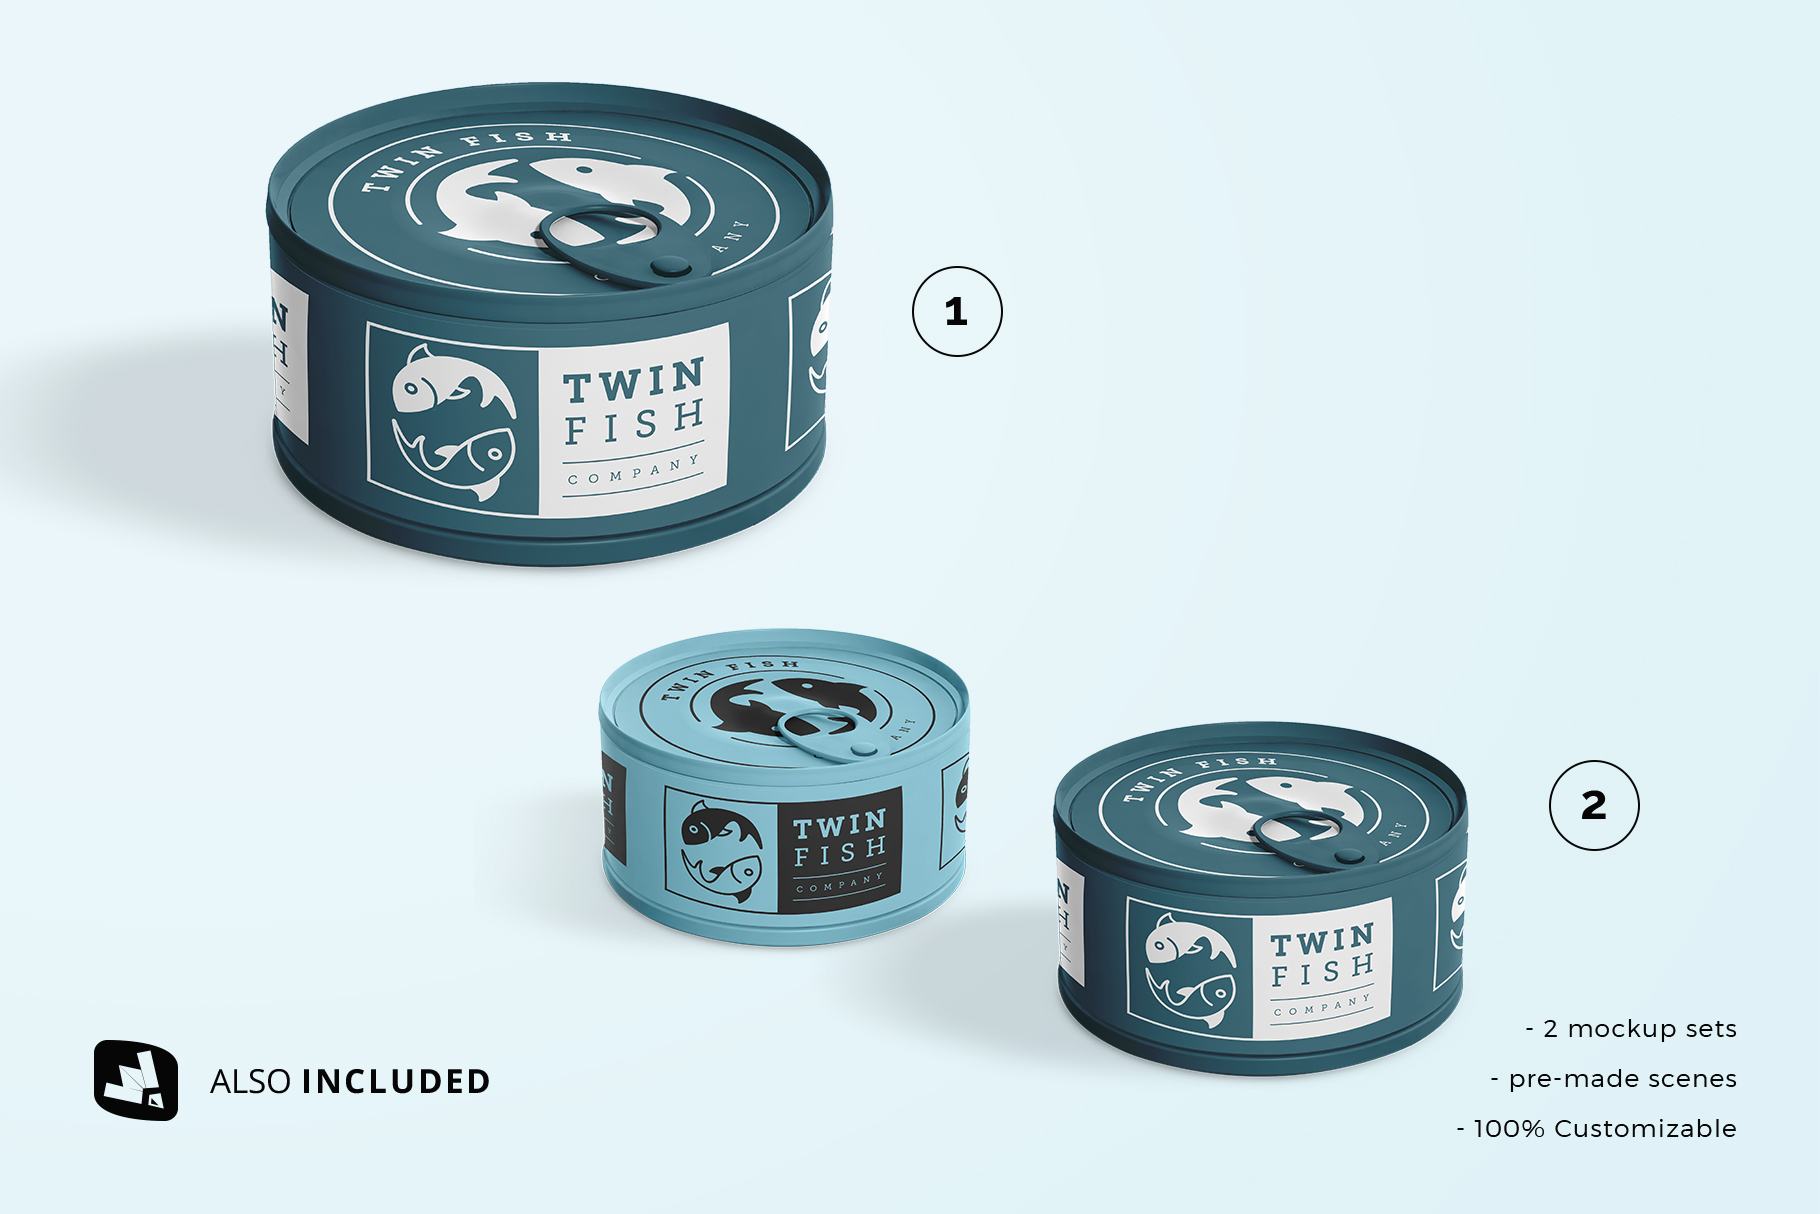 files included in the circular canned food packaging mockup